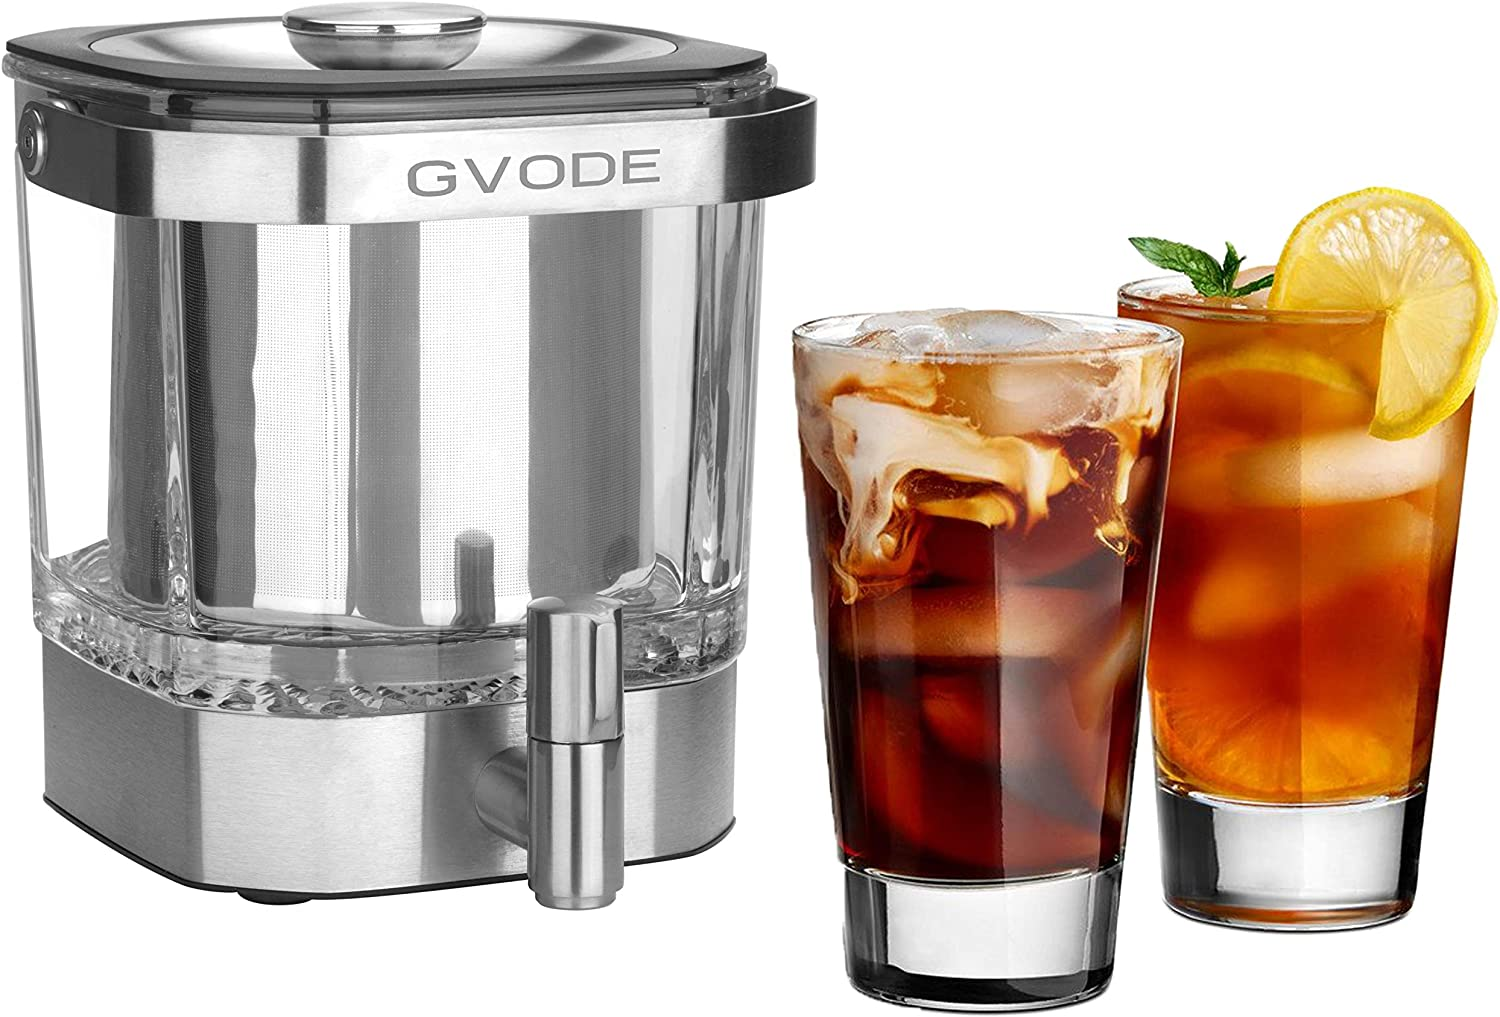 Cold Brew Coffee Maker,42 Ounce, Premium Glass Pitcher plus Stainless Steel Filter,Iced Beverage Tea Infuser/Brewer/Dispenser